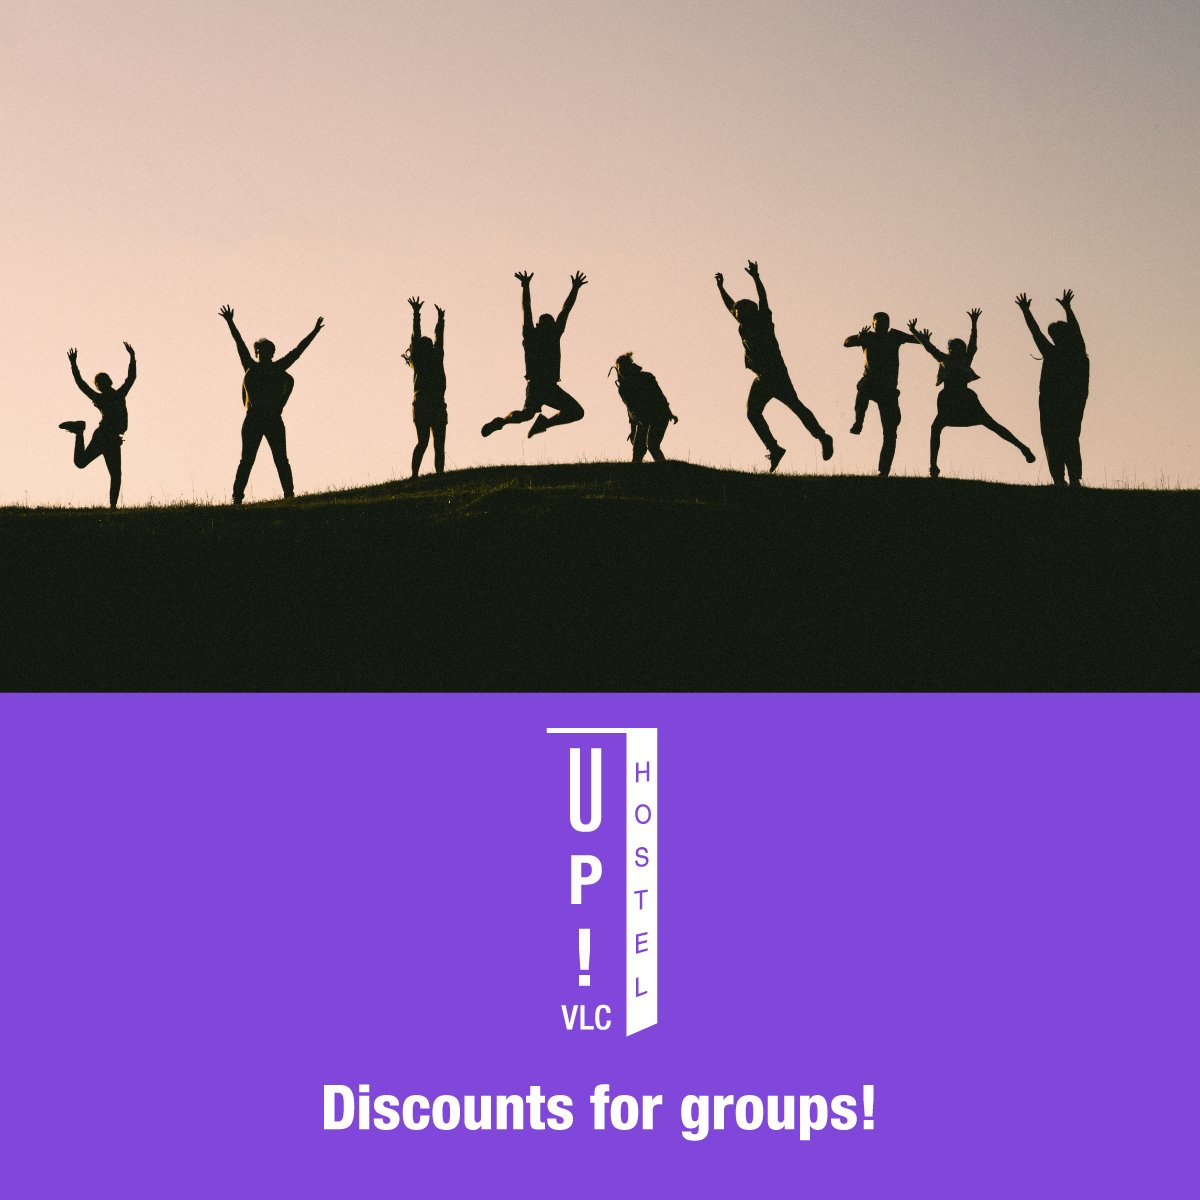 SPECIAL DISCOUNTS! #UpHostelValencia is the best #accommodation in the city for university #groups, friends, students... Enjoy with us your next summer vacation!  http:// uphostel.com/en  &nbsp;   #uphostel #hostelvalencia #valencia #alojamiento #turismo #amigos #viaje  #travel #hostel<br>http://pic.twitter.com/8qS1bMInMC